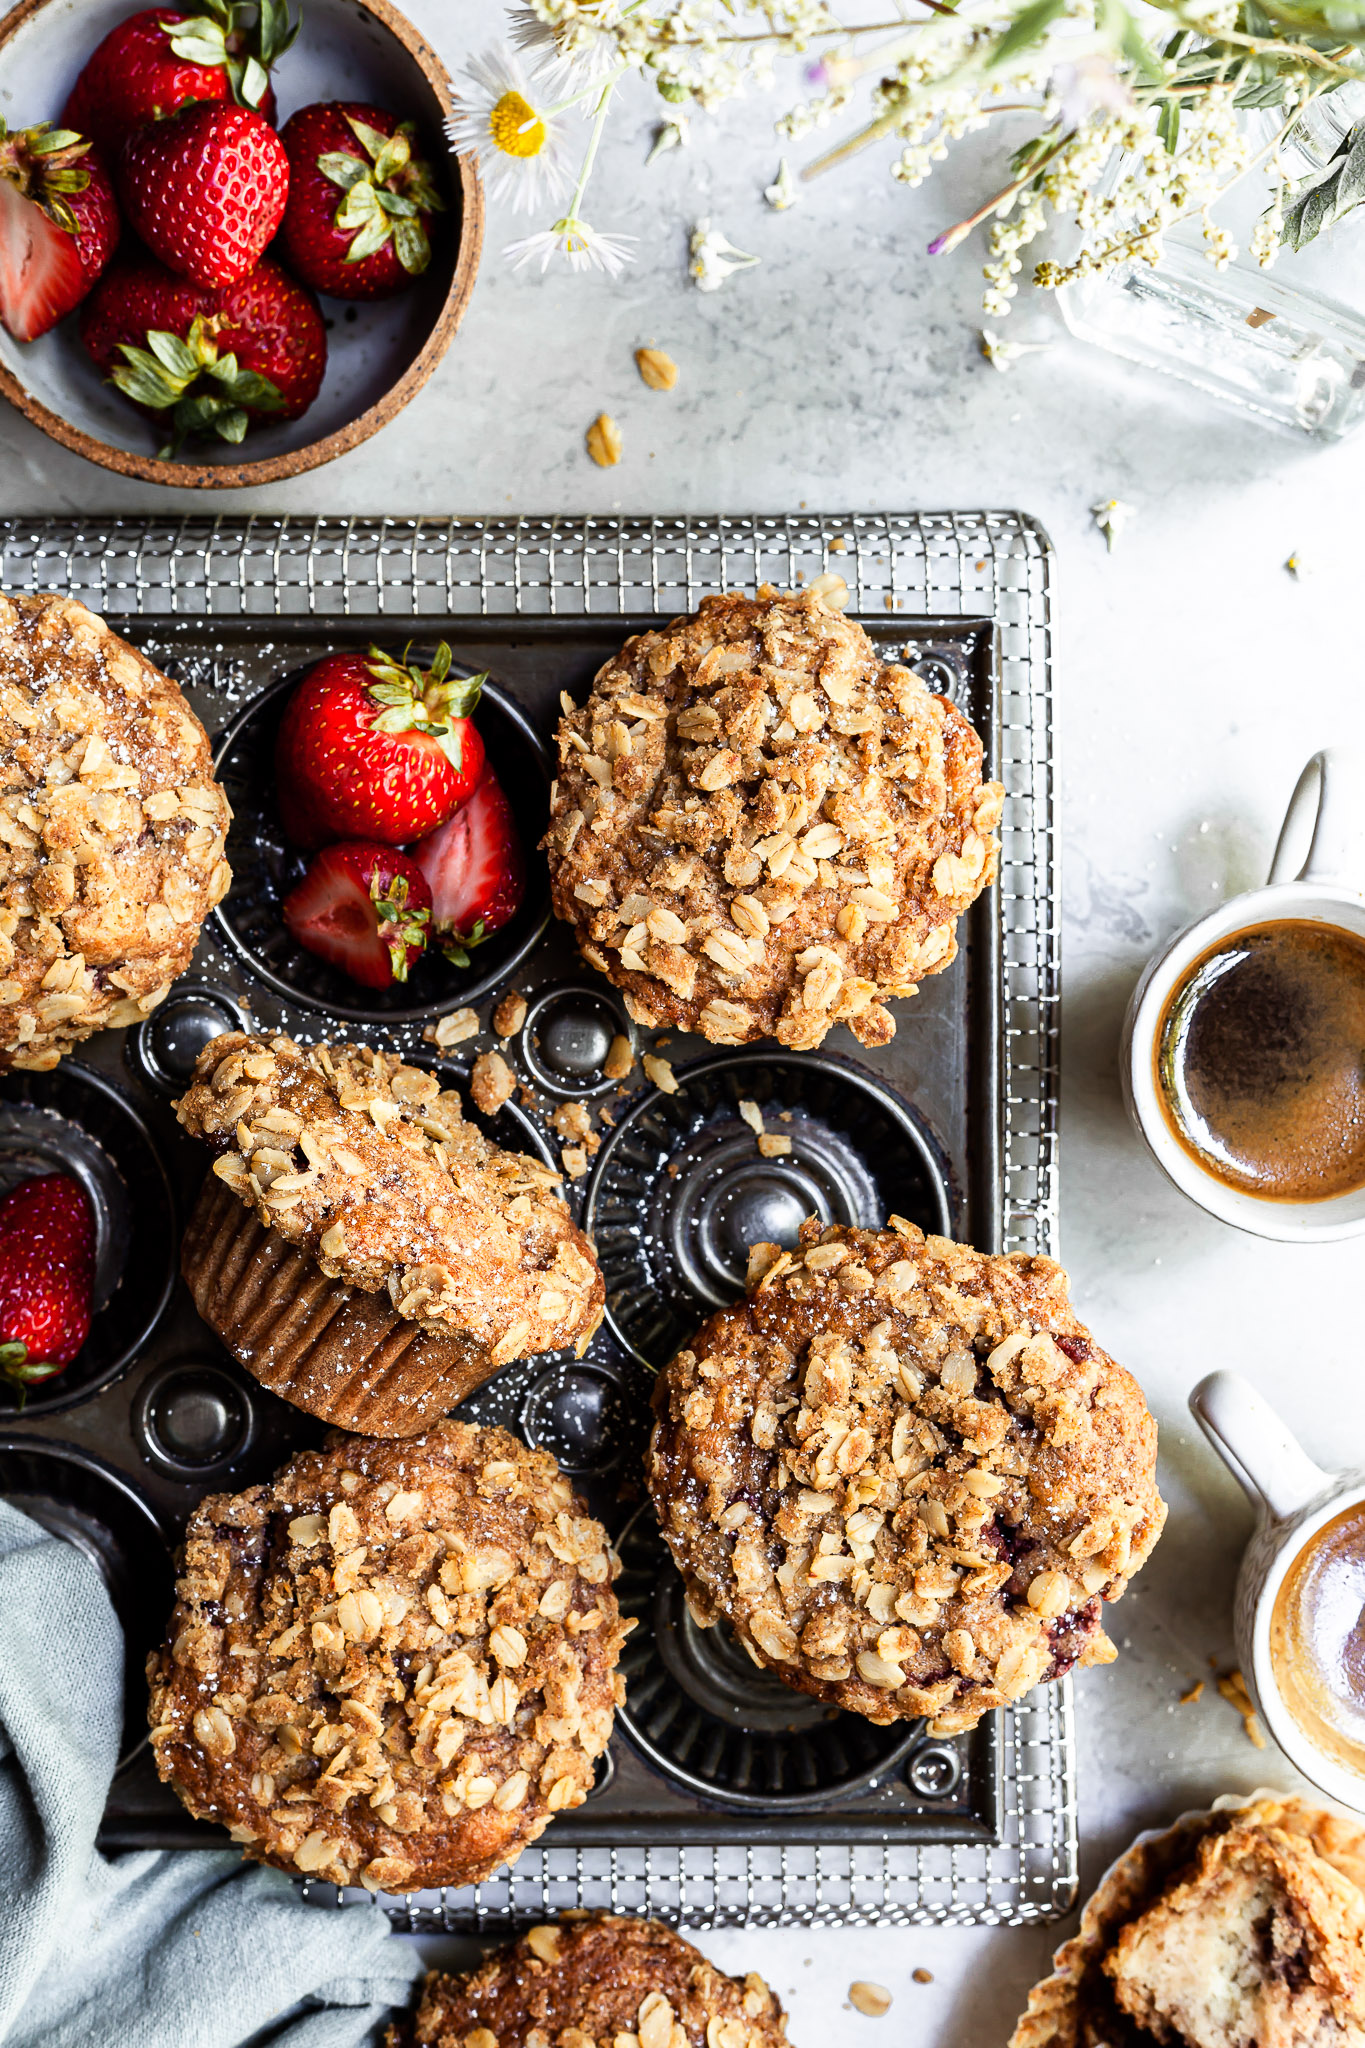 View looking down on a baking tray of muffins beside a bowl of strawberries, a vase of wildflowers and 2 some cups of espresso